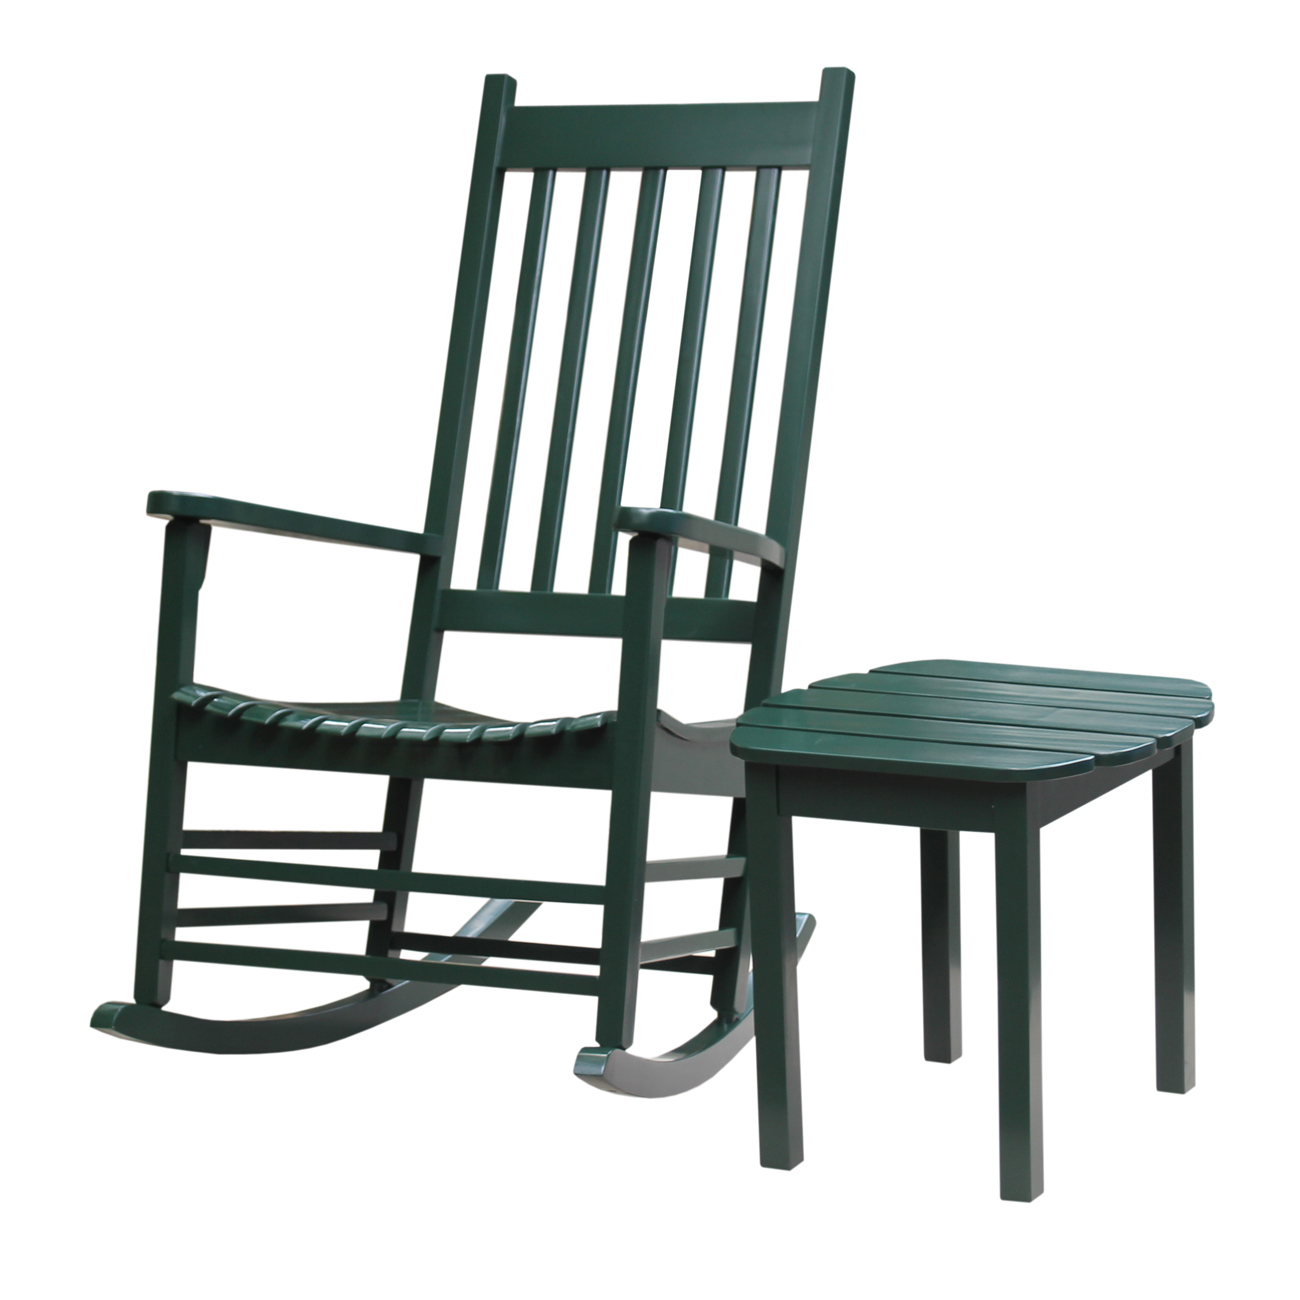 Porch Rocker with Side Table in Hunter Green